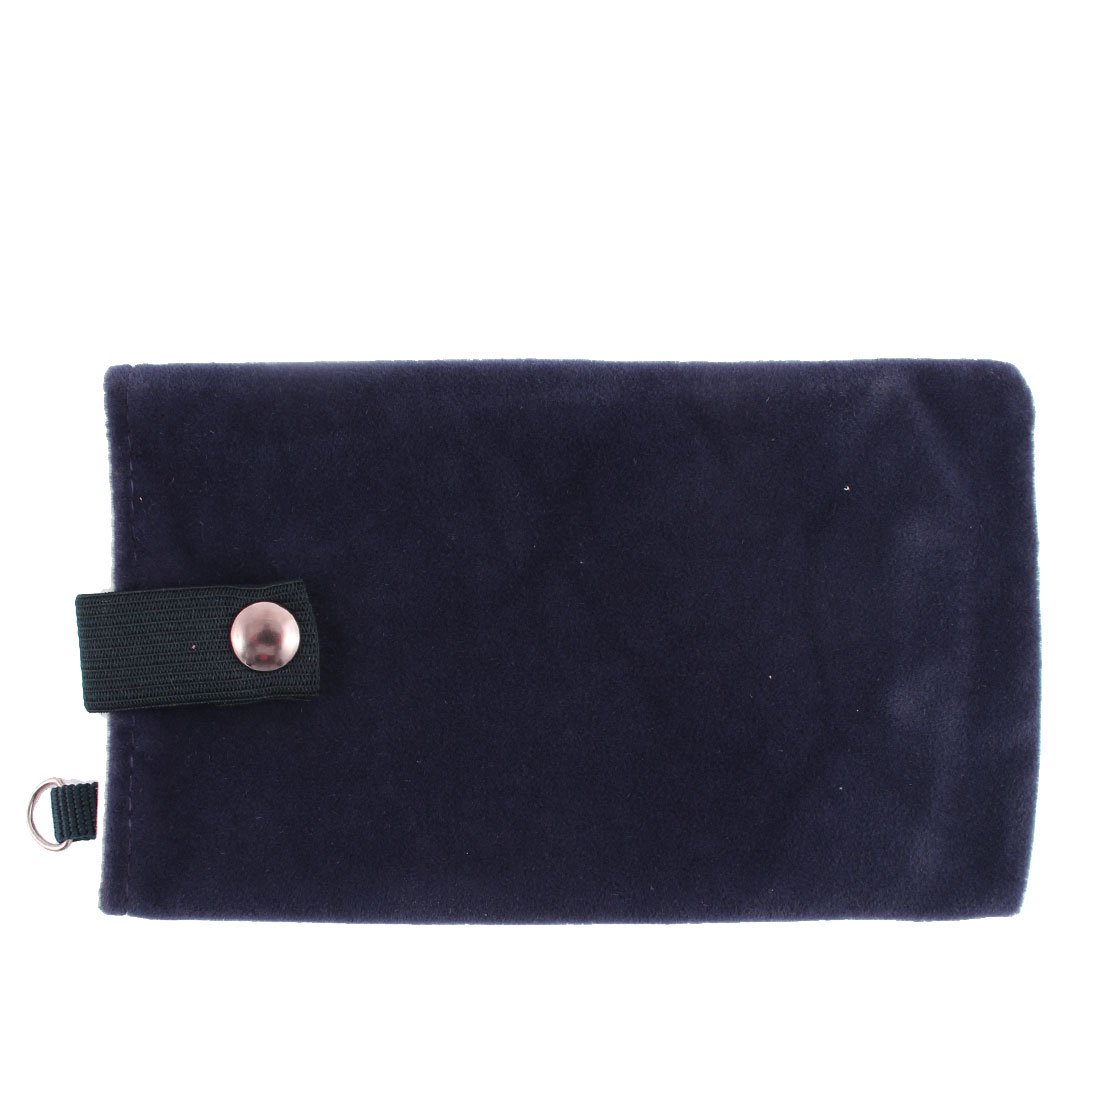 Velvet Magnetic Clasp Button Cell Phone Pouch Sleeve Bag Dark Blue 16x9.5cm